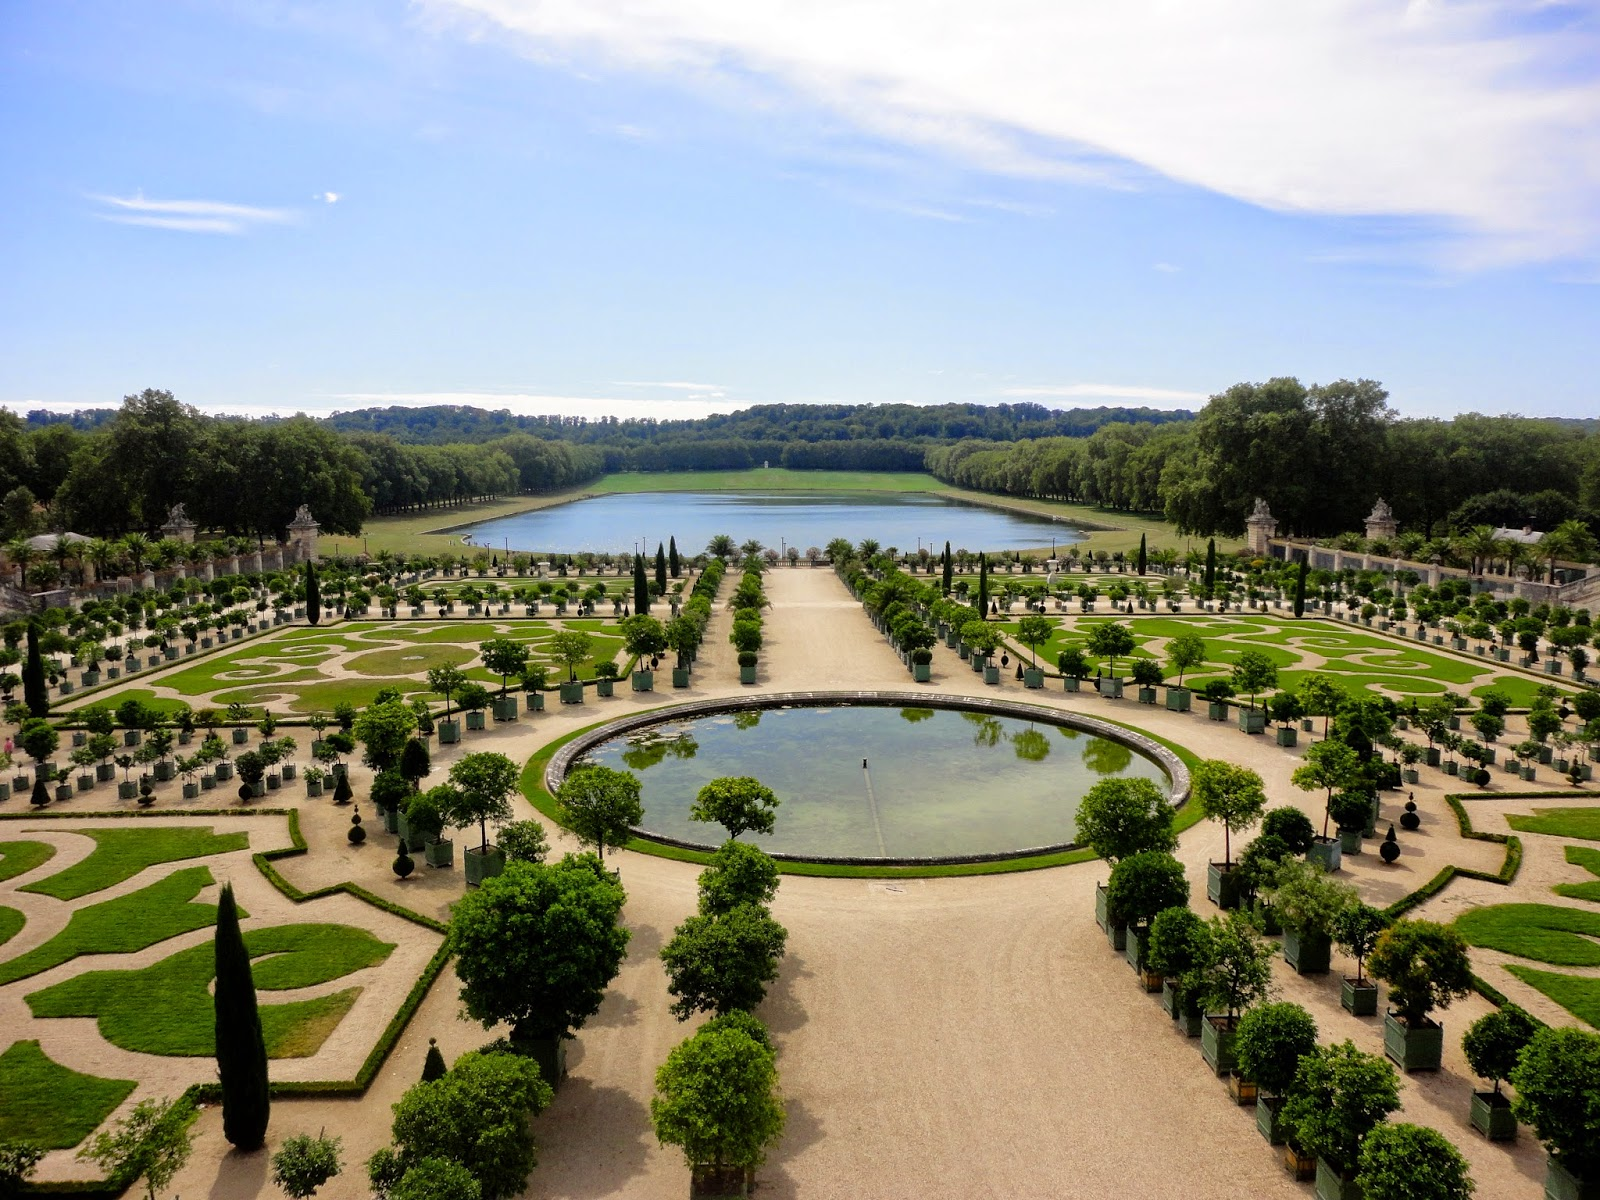 Gardens at the Chateau de Versailles, Paris